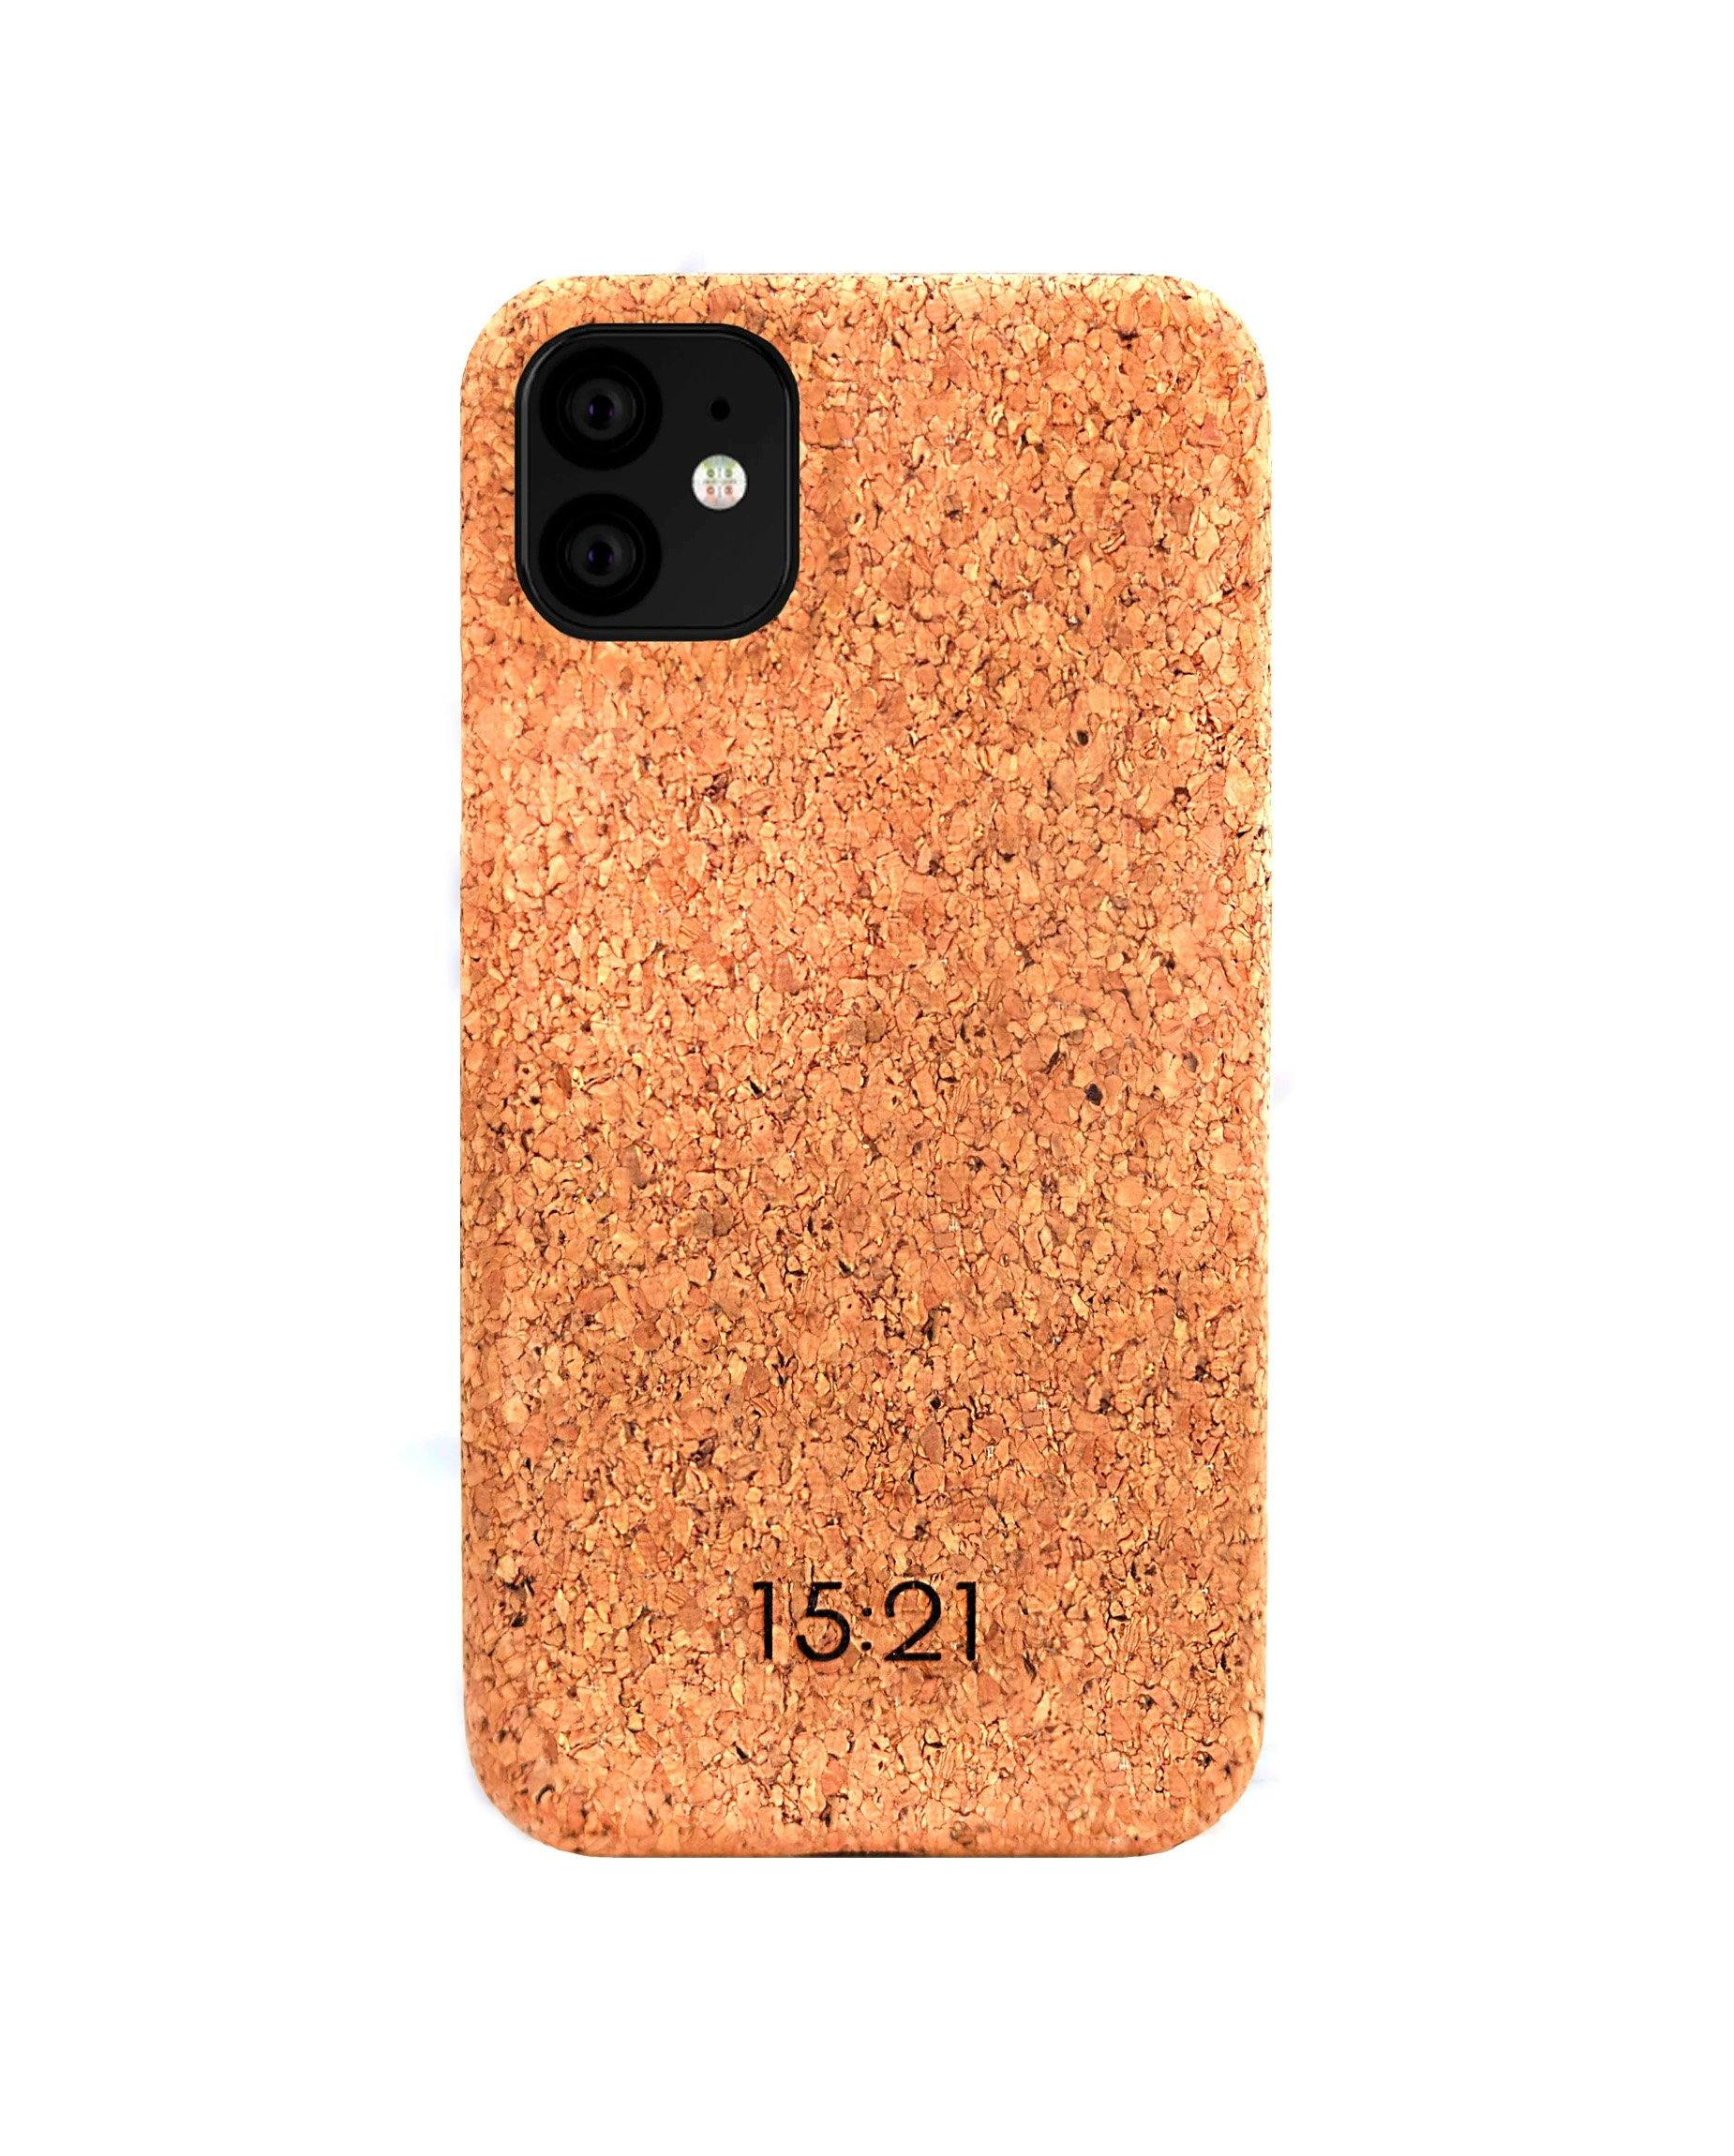 iPhone 11 Cork Cover - Debonair